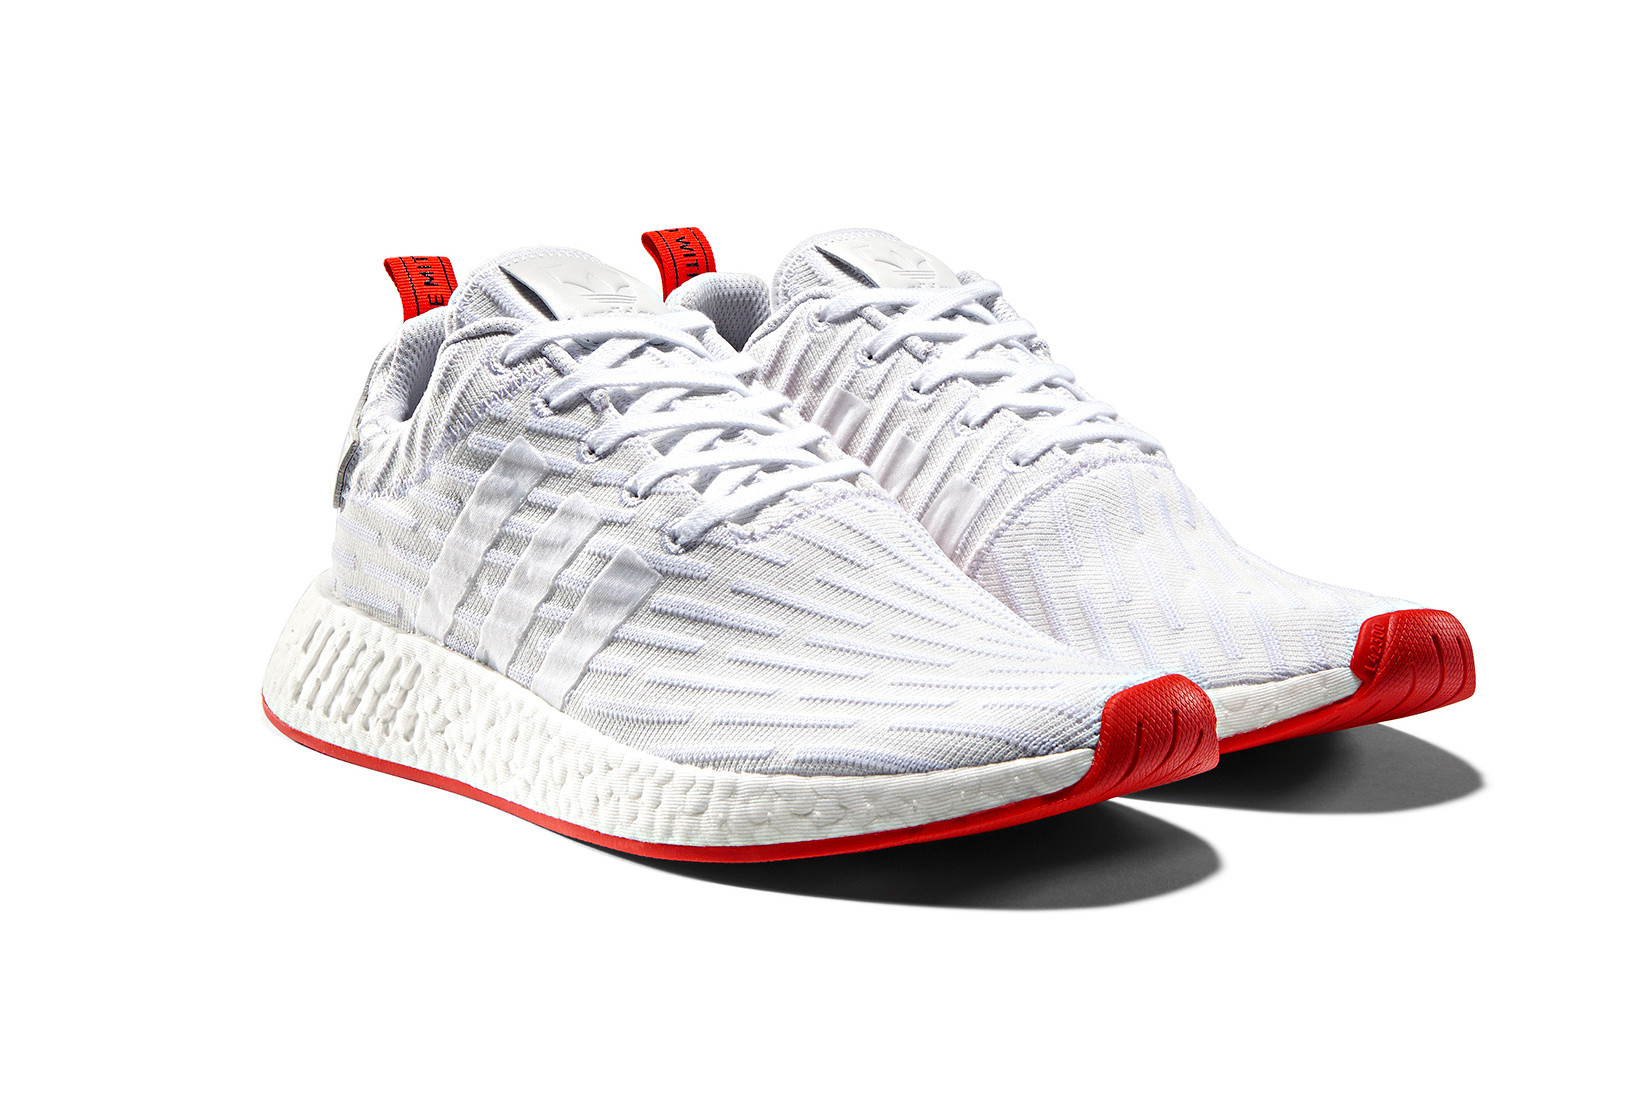 adidas NMD_R2 in White \u0026 Red | HYPEBEAST